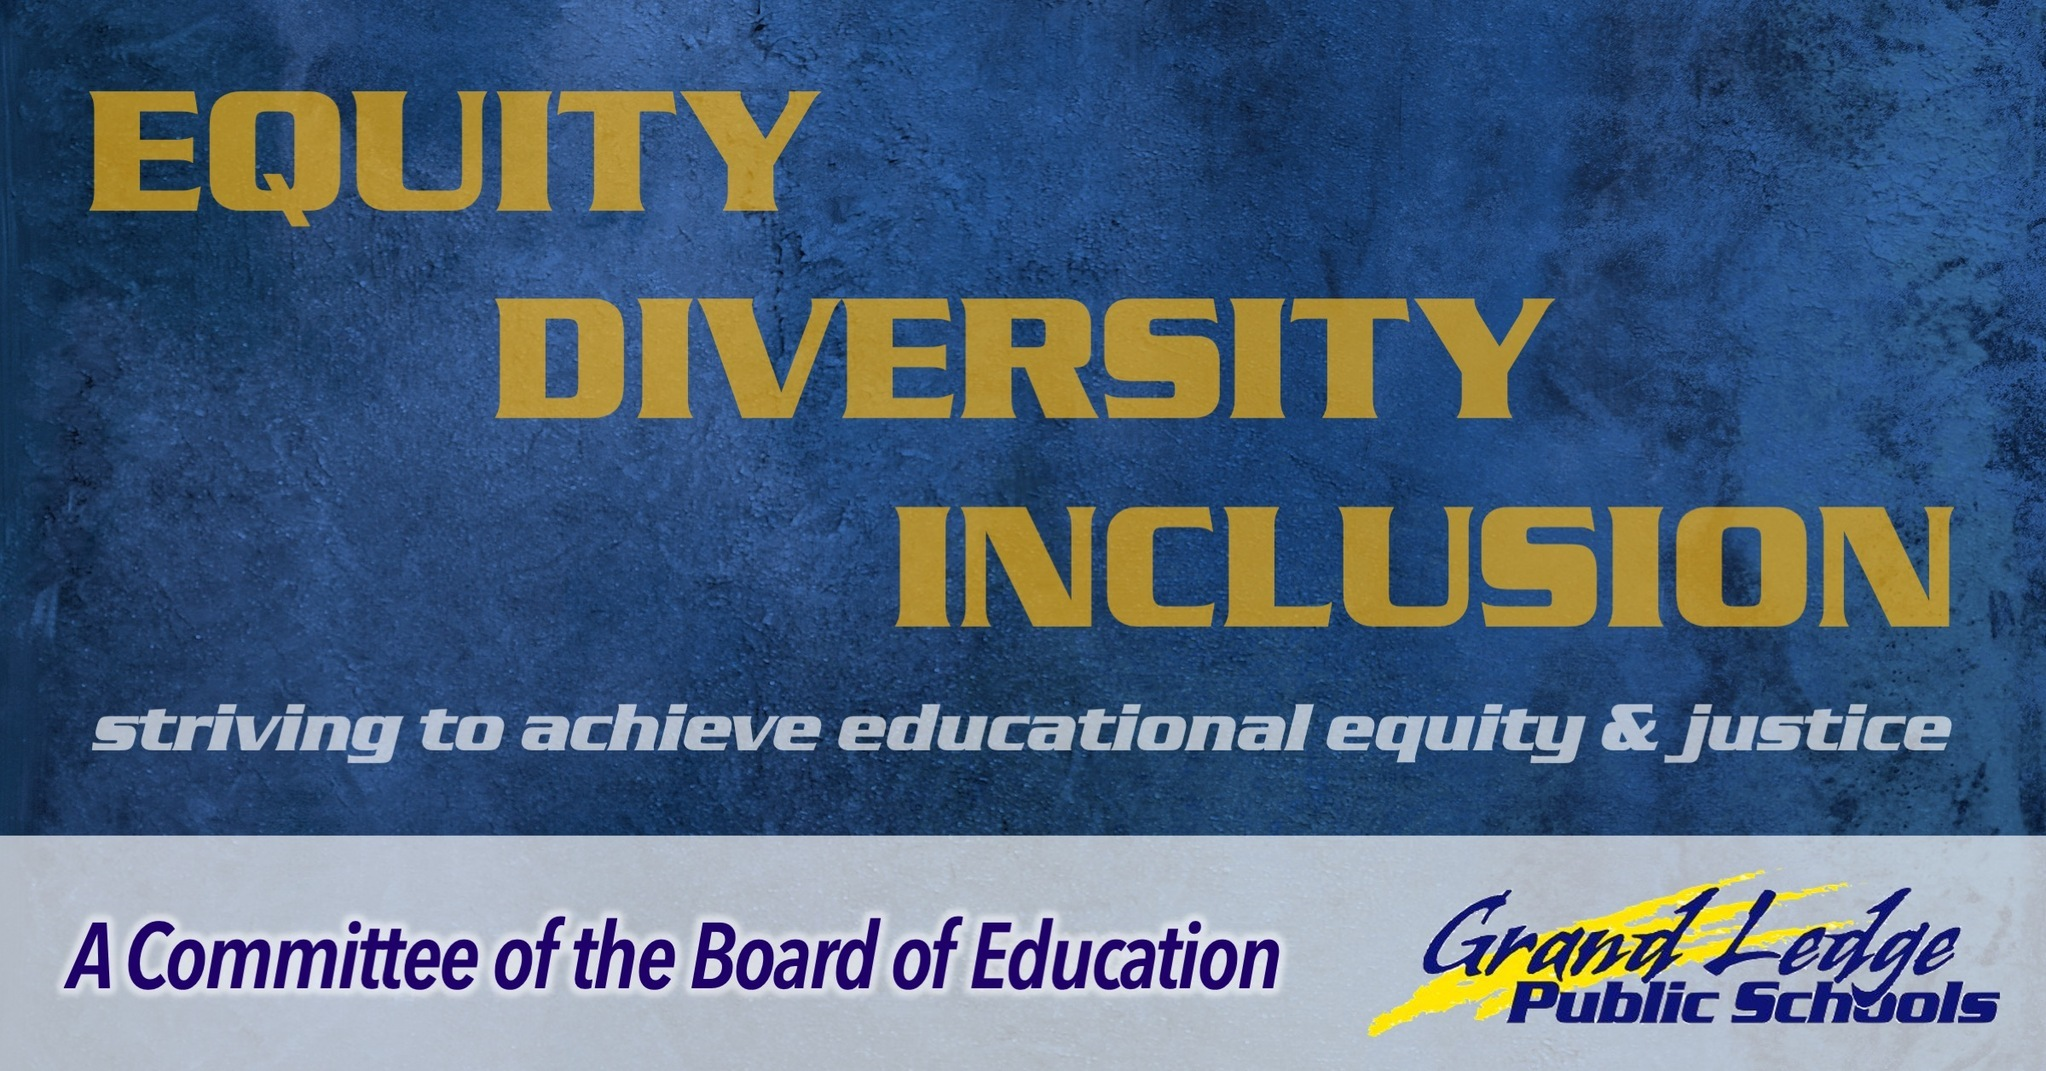 Equity, Diversity, and Inclusion Committee of the Board of Education